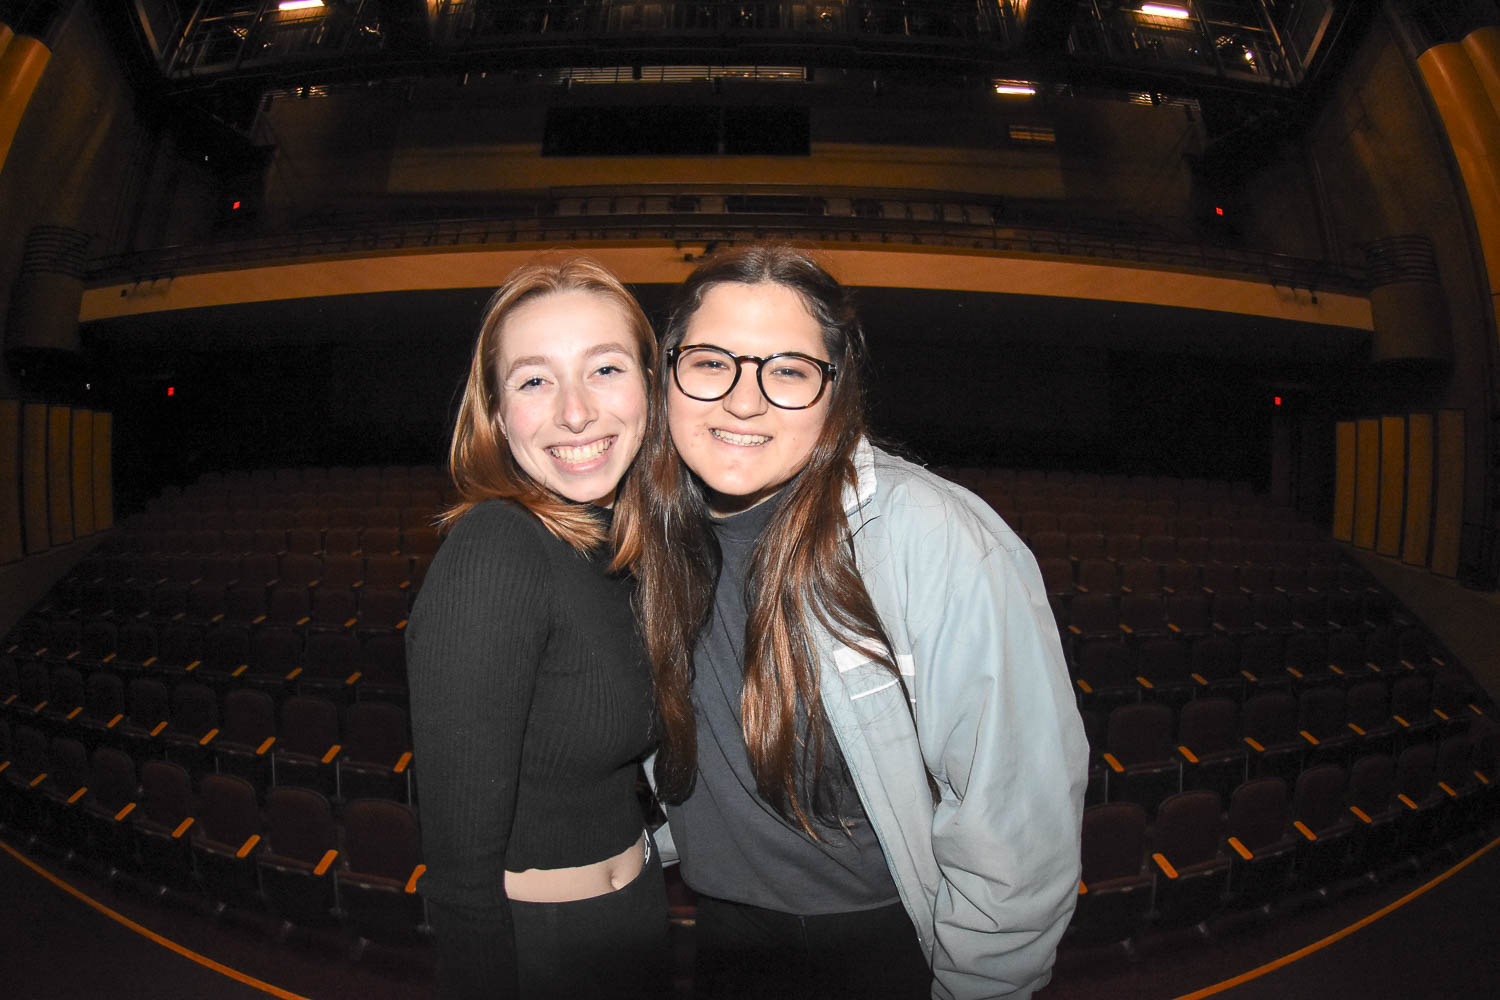 Olivia Price and Sierra Young recently got admitted to Carnegie Mellon University, for technical theater, the best program in the country. Young designed sets and Price designed lighting for many Stallion Theater Company shows, and they look forward to continuing their education doing what they love.